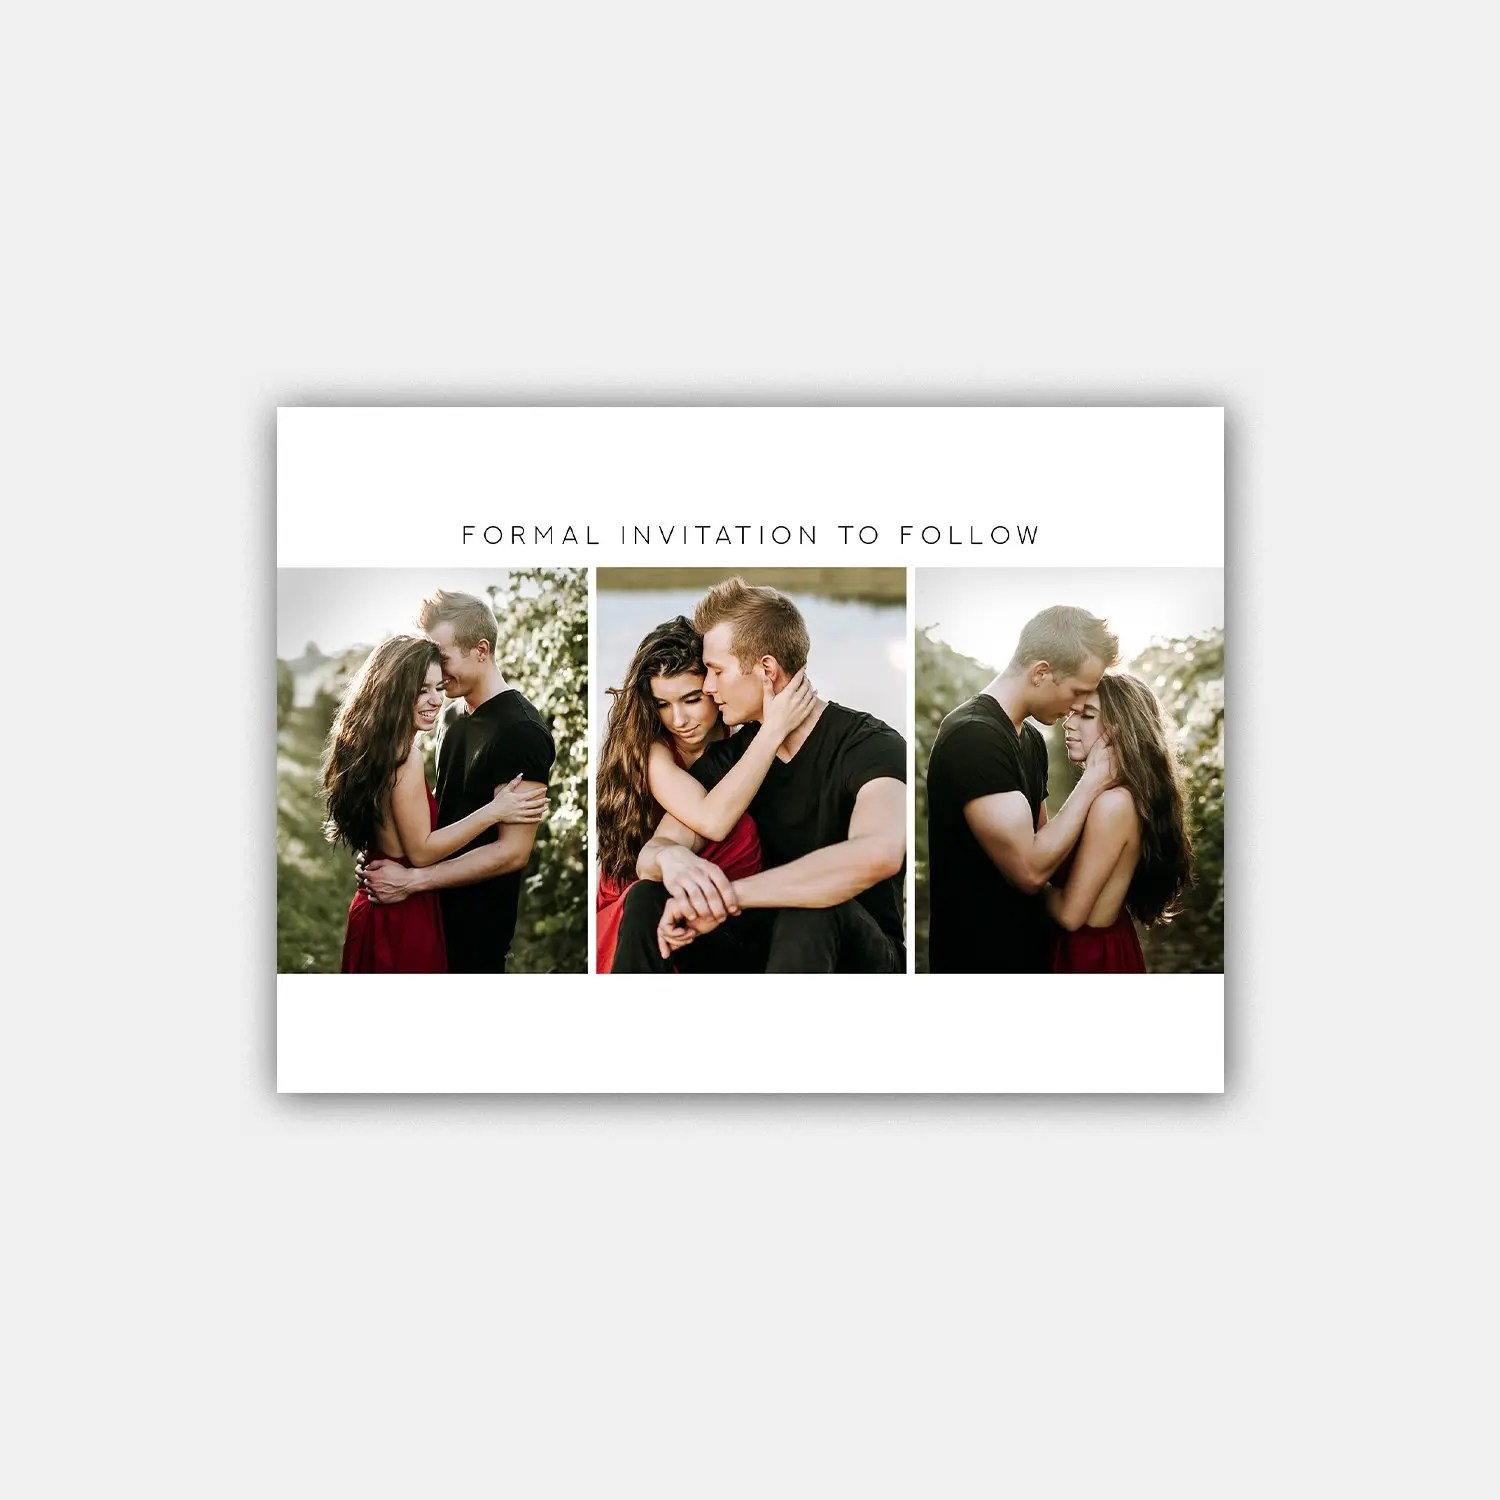 timeless save the date template